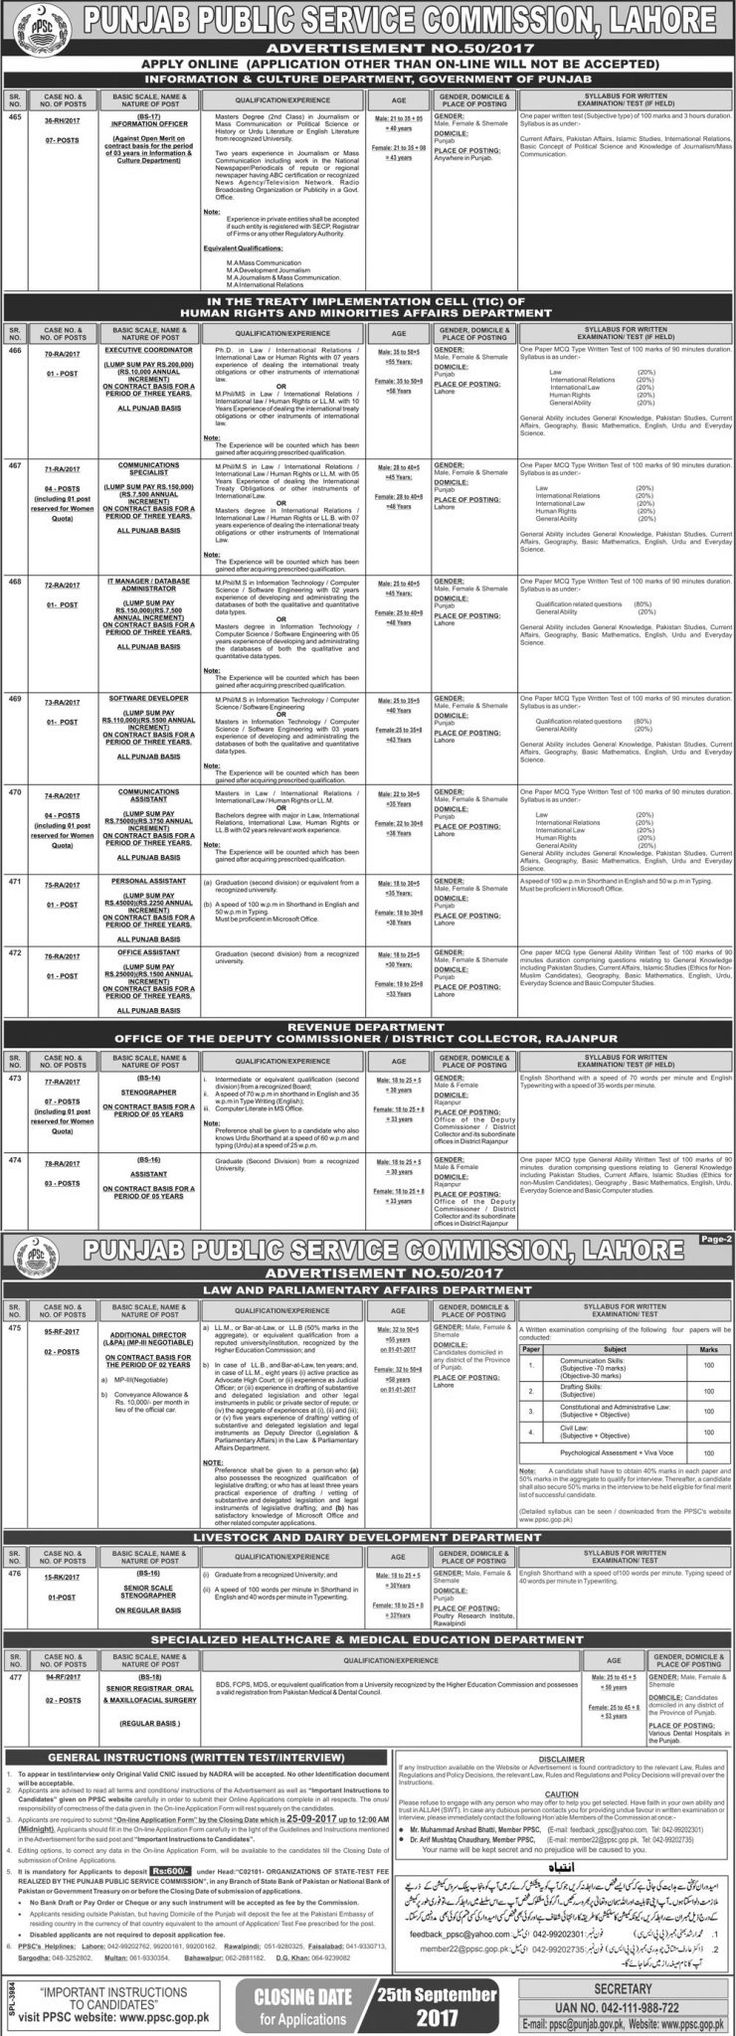 Punjab Public Service Commission Jobs 2017 For Information Officer And Personal Assistant http://www.jobsfanda.com/punjab-public-service-commission-jobs-2017-for-information-officer-and-personal-assistant/